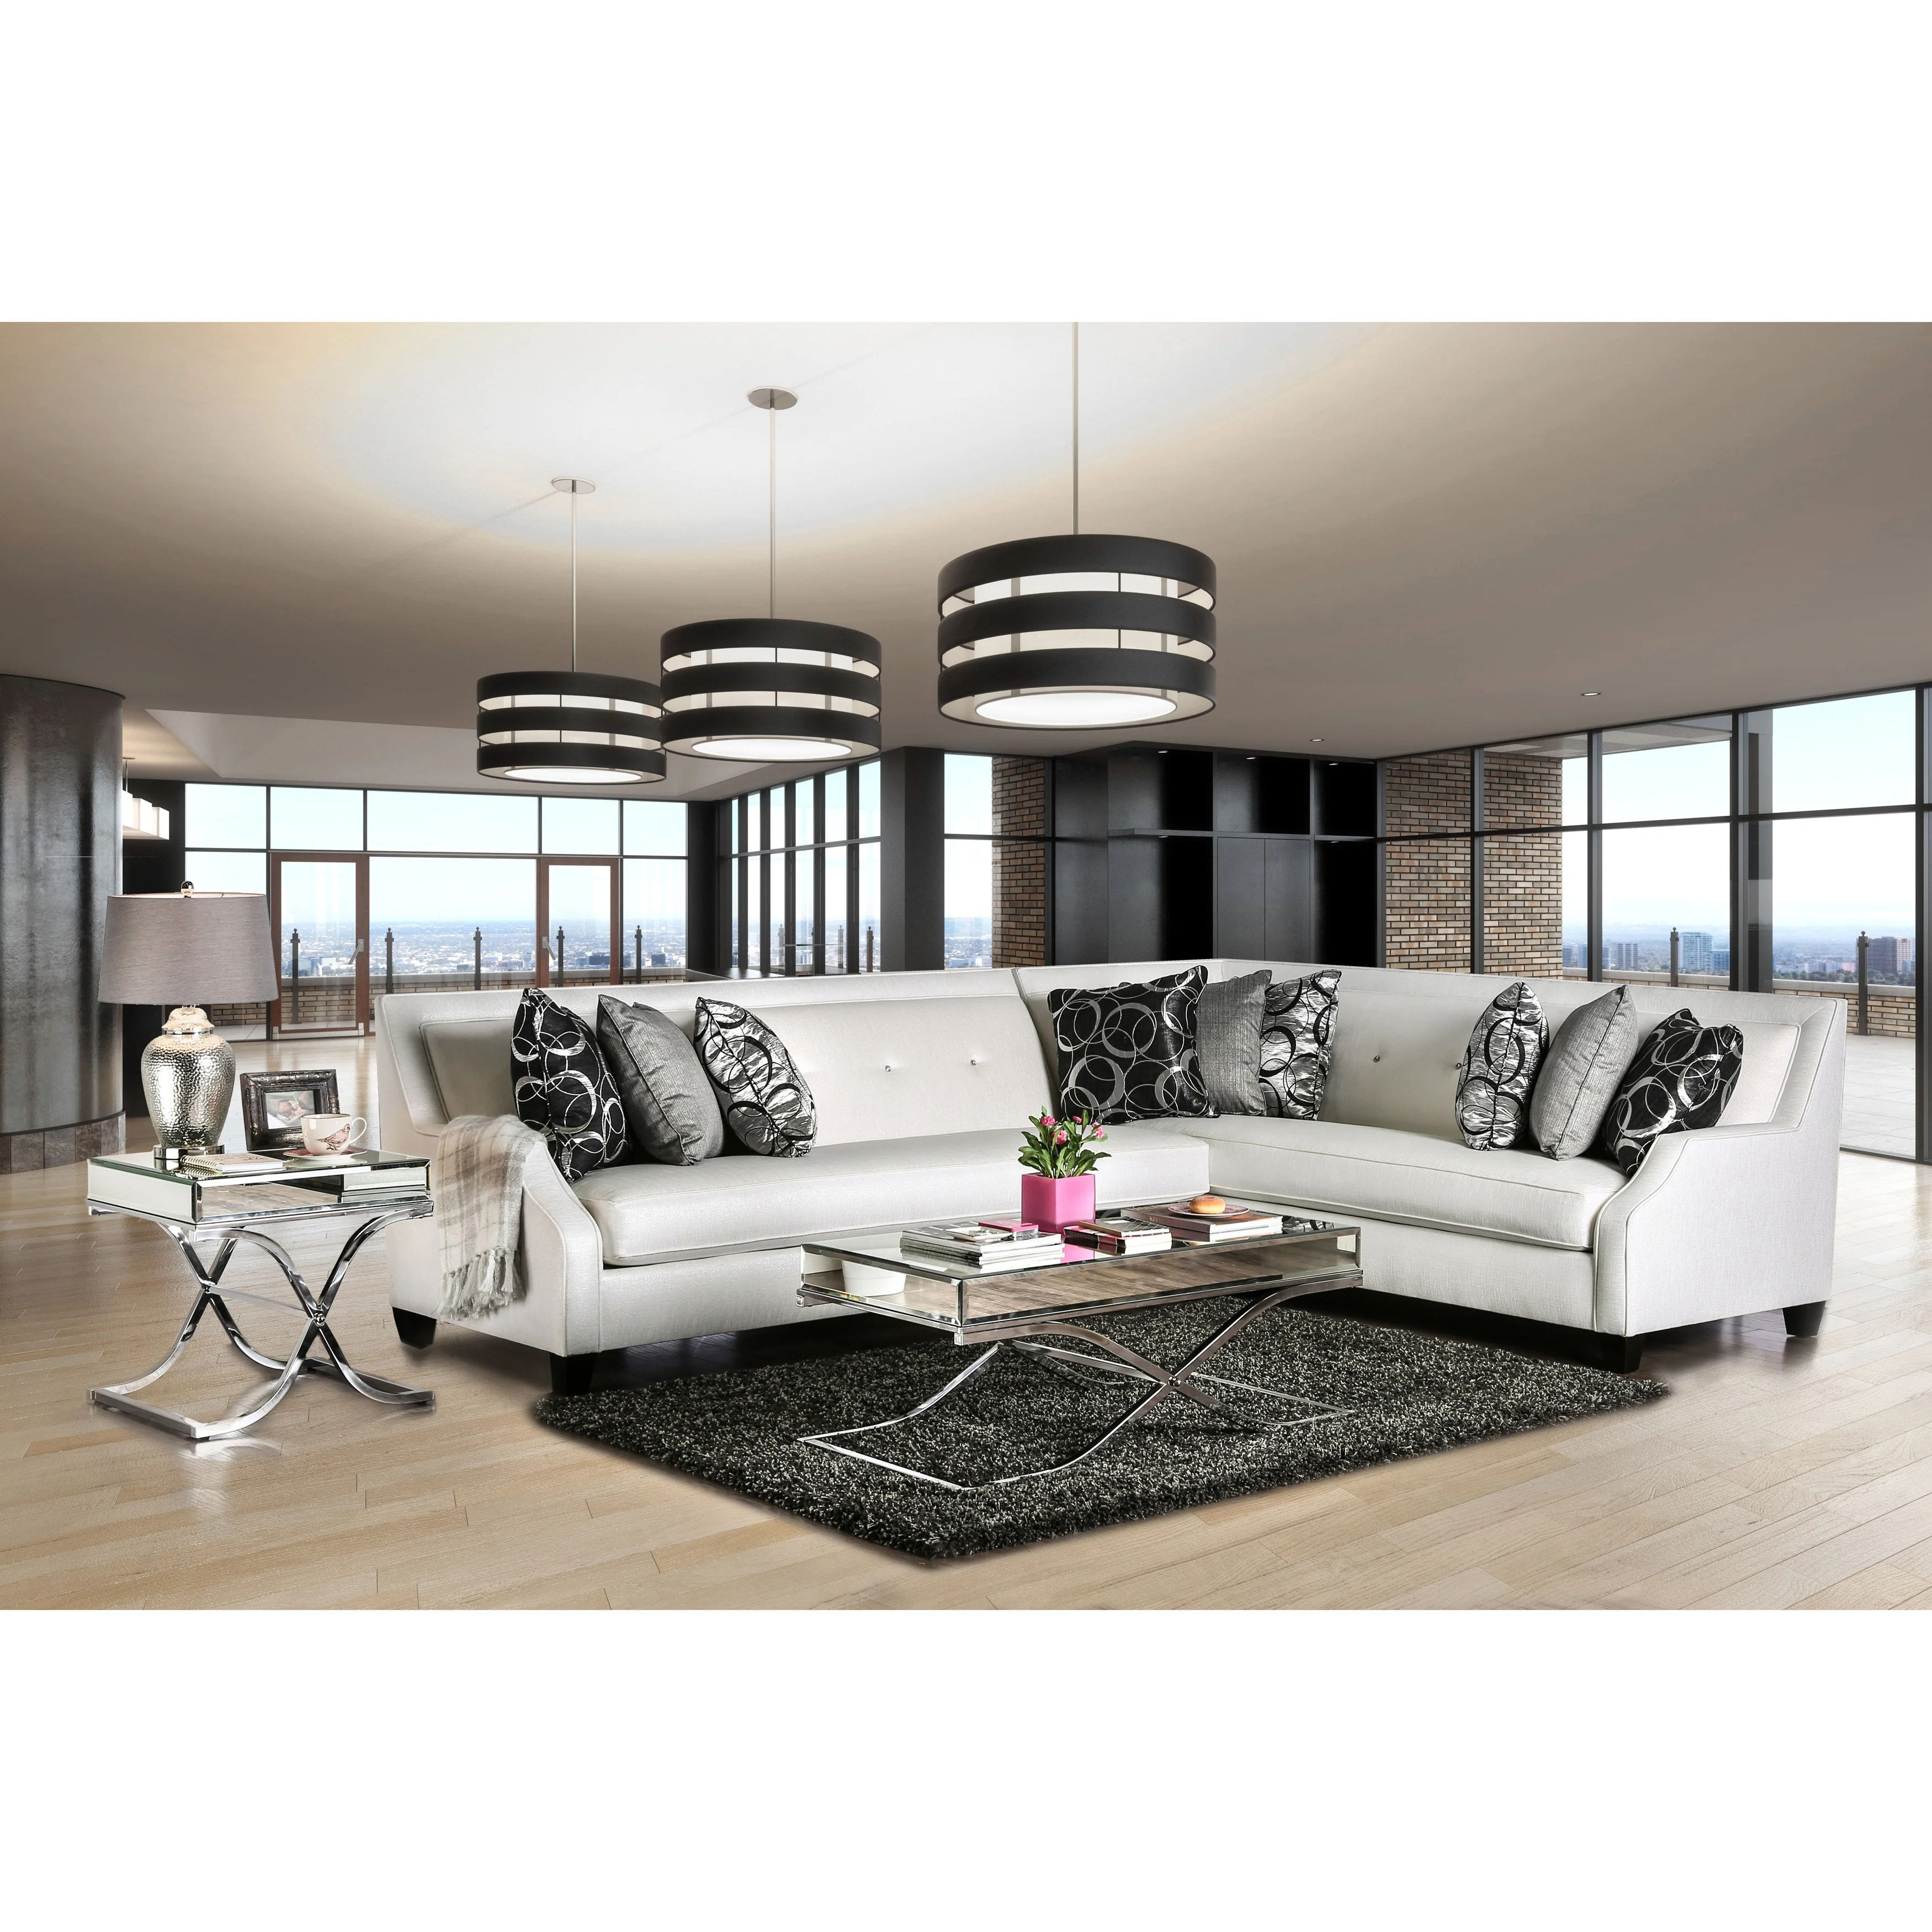 furniture of america zark contemporary white fabric tufted sectional sofas